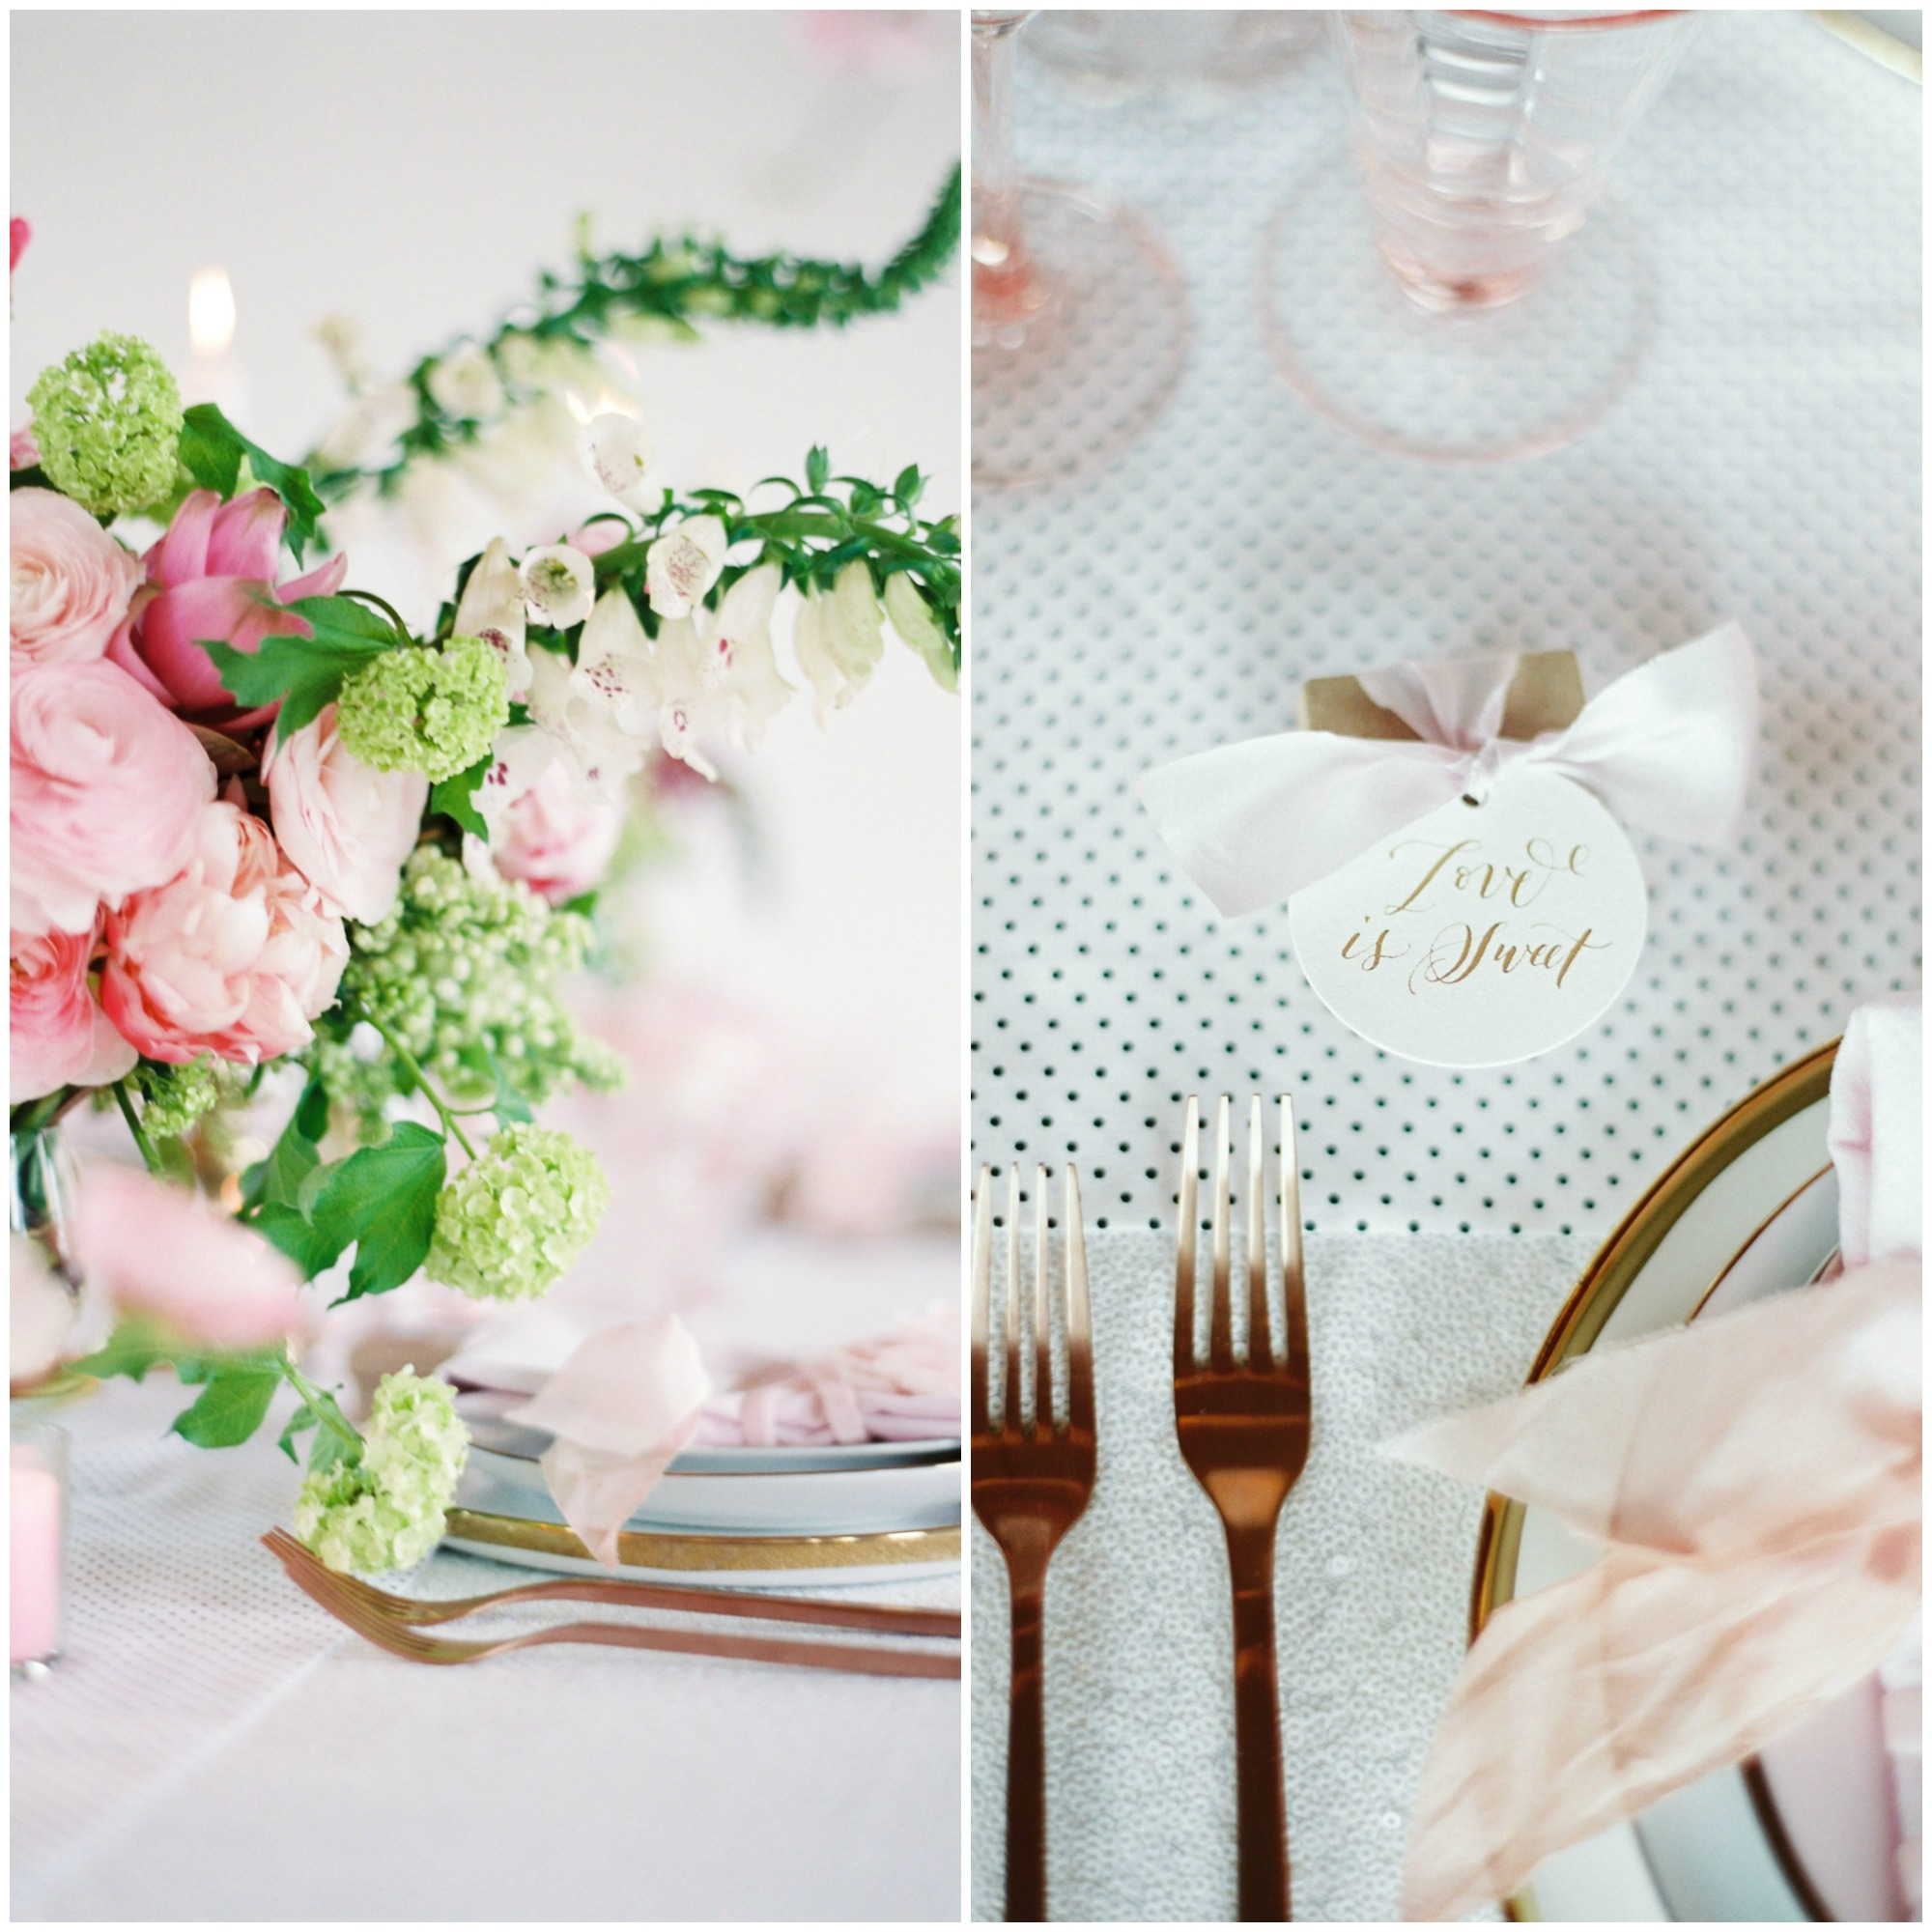 Lucy Davenport Photography - Rebecca K Events